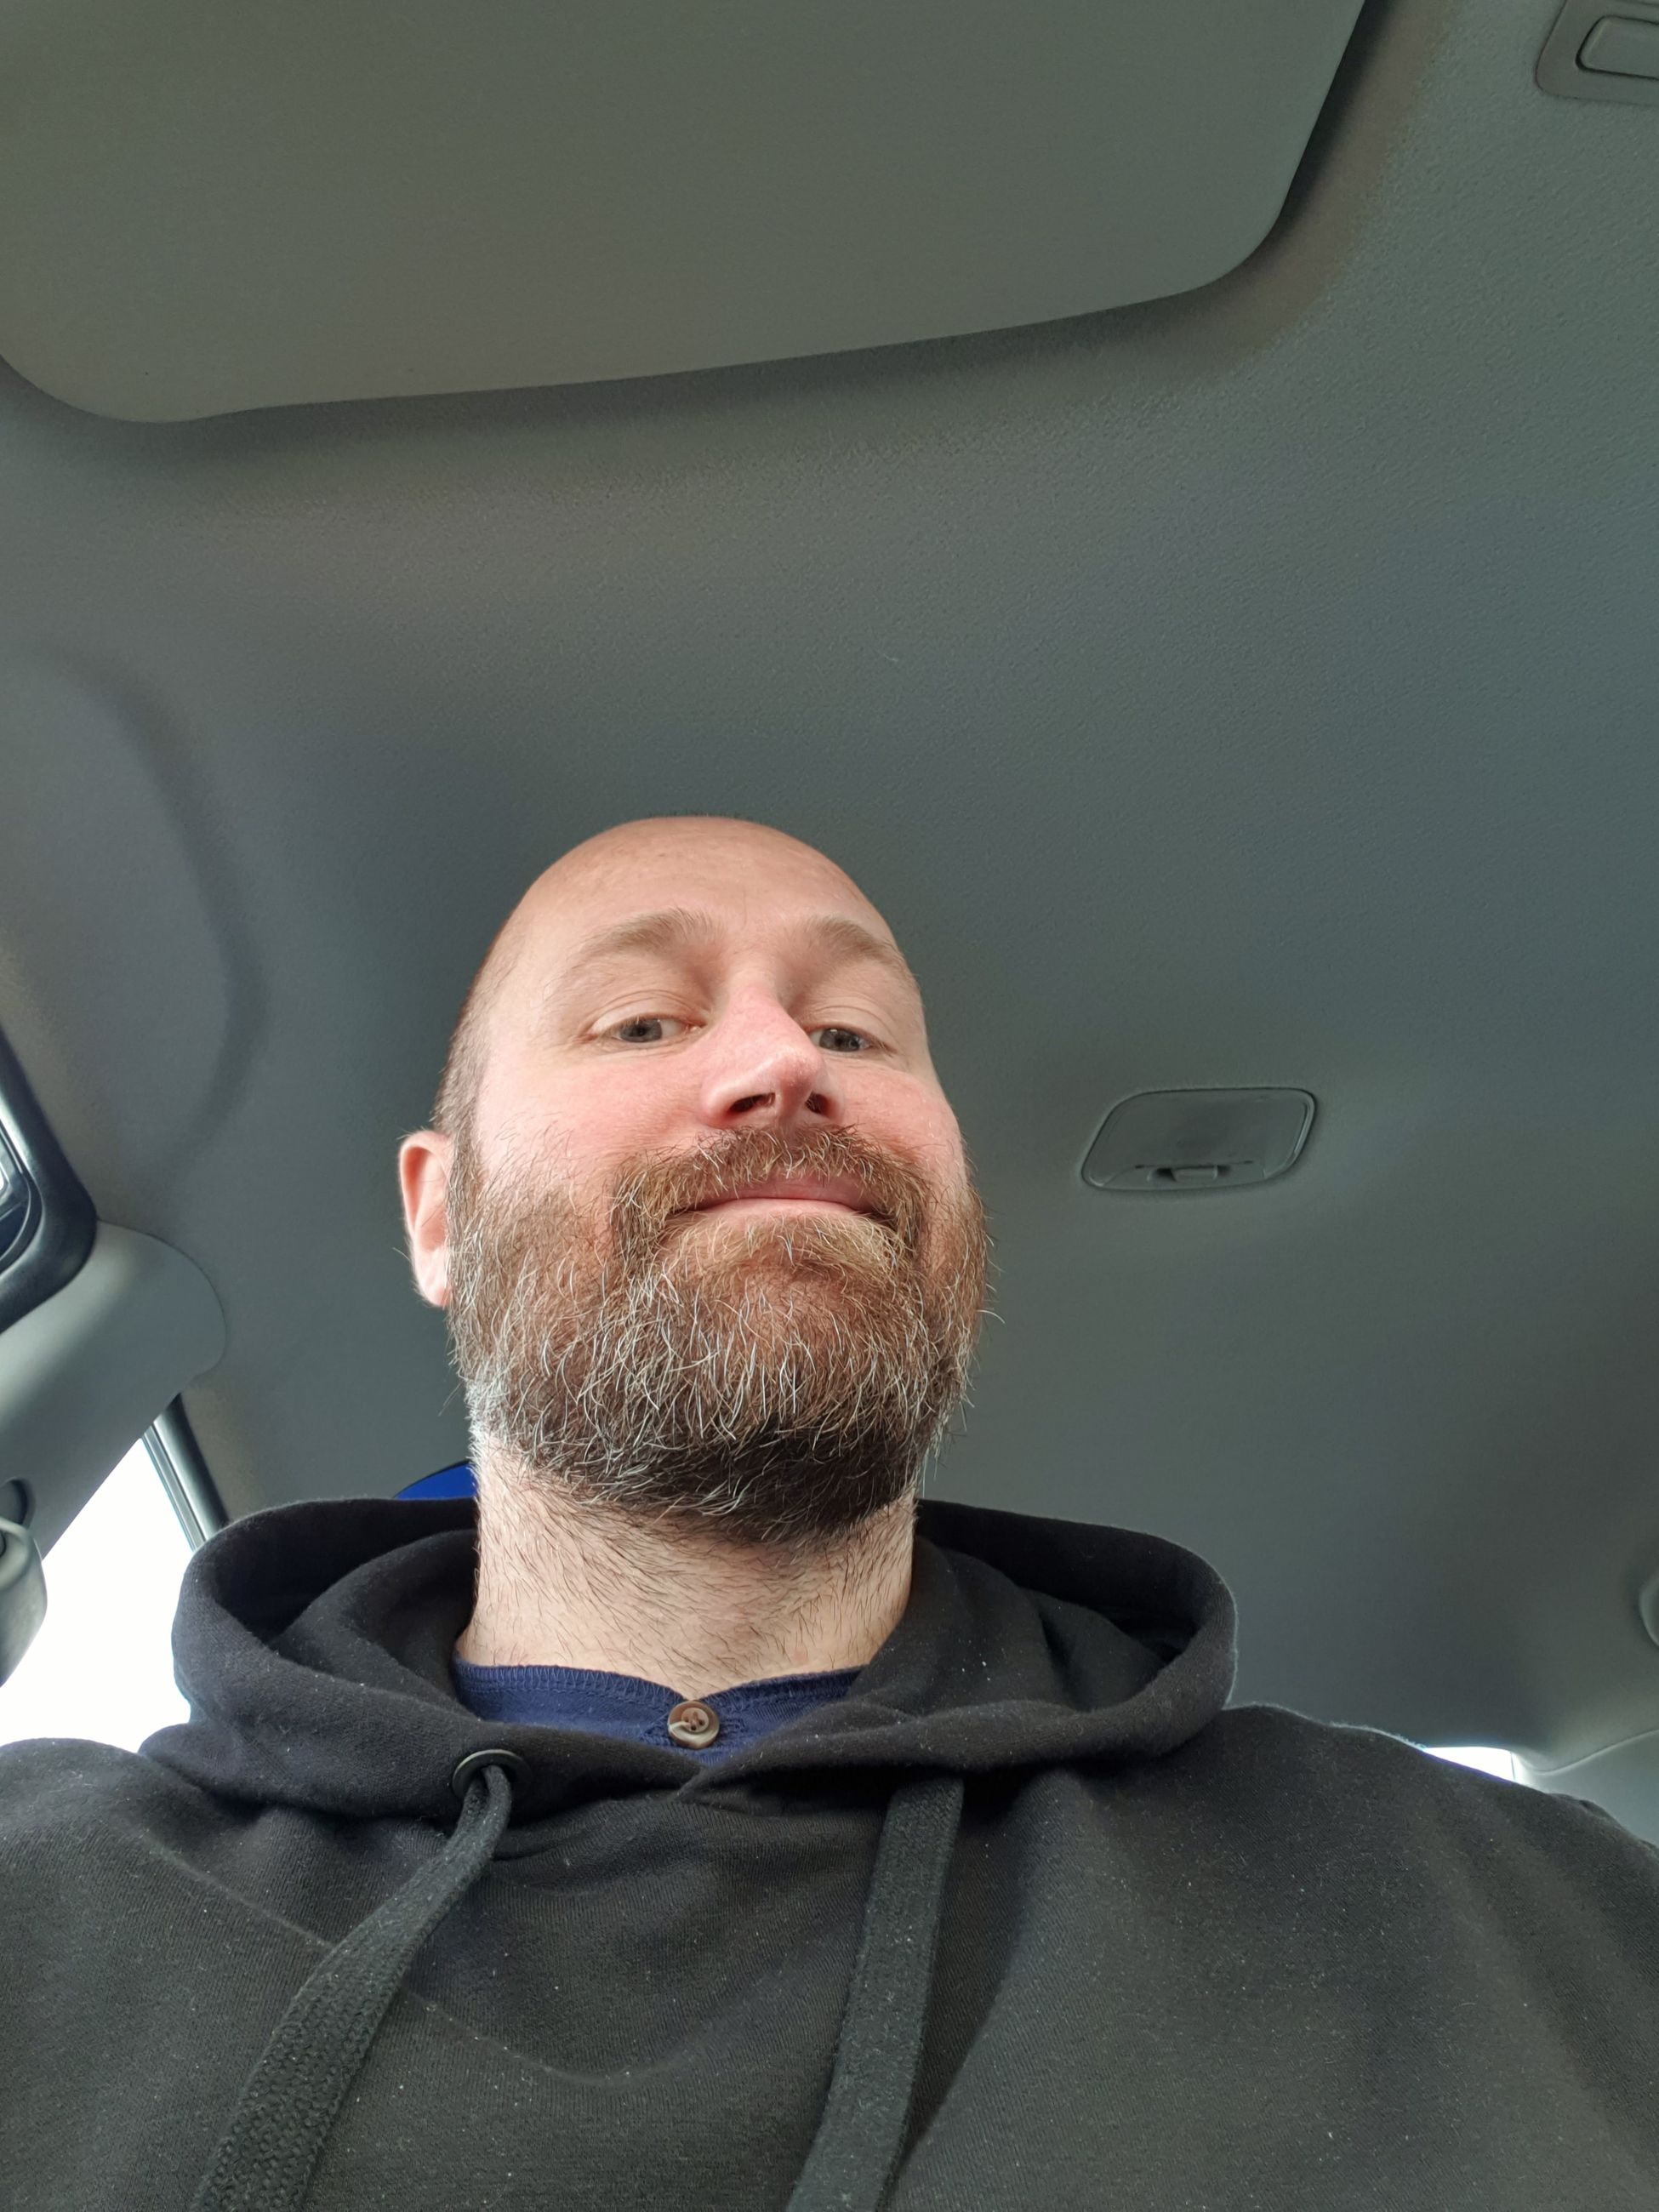 facial hair, beard, real people, transportation, men, portrait, mature adult, mode of transportation, males, vehicle interior, adult, mature men, headshot, car, one person, motor vehicle, lifestyles, front view, mid adult men